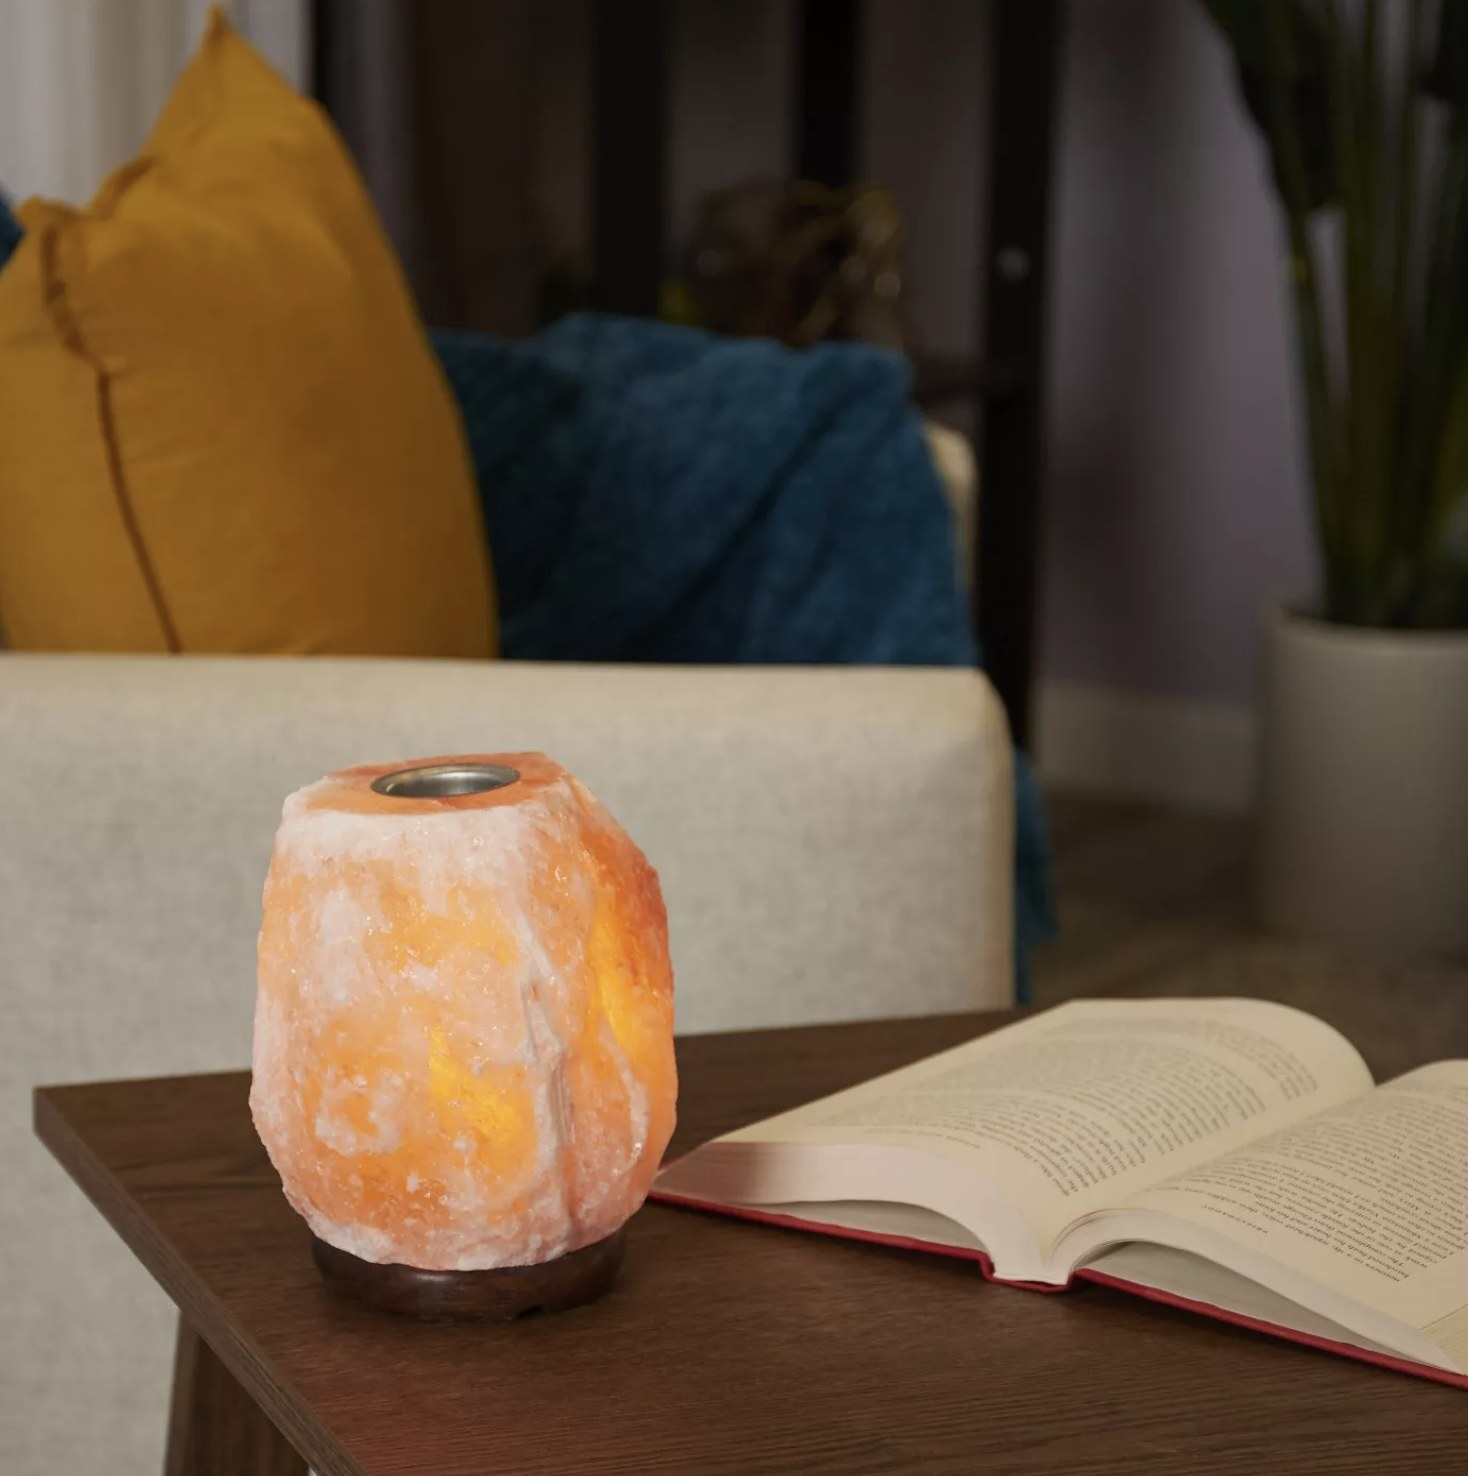 A Himalayan Salt lamp sits on a side table lit up next to a book and couch